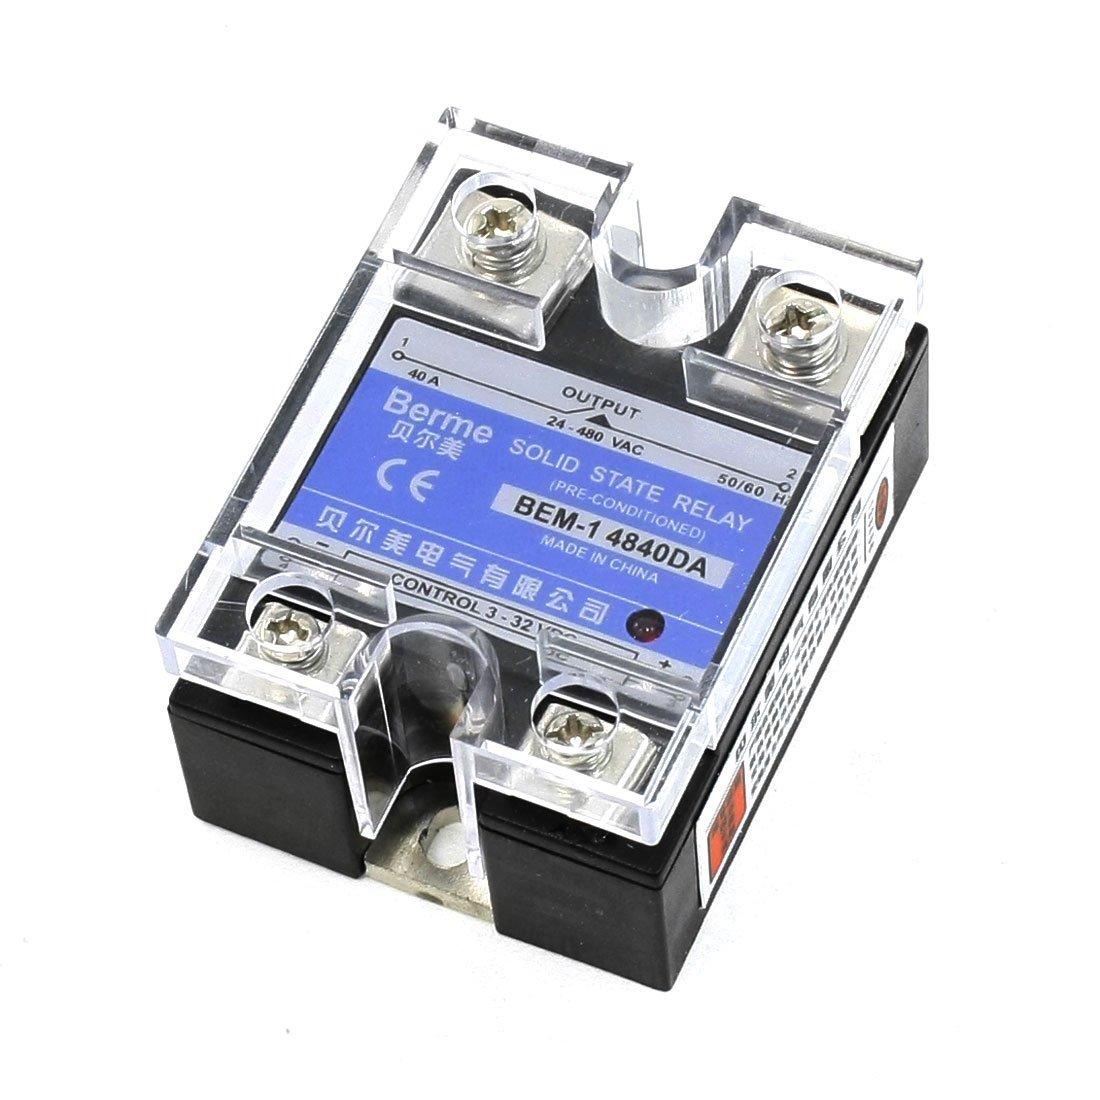 24-480V AC DC to 3-32VDC Output Single Phase SSR Solid State Relay 40A 20dd ssr control 3 32vdc output 5 220vdc single phase dc solid state relay 20a yhd2220d